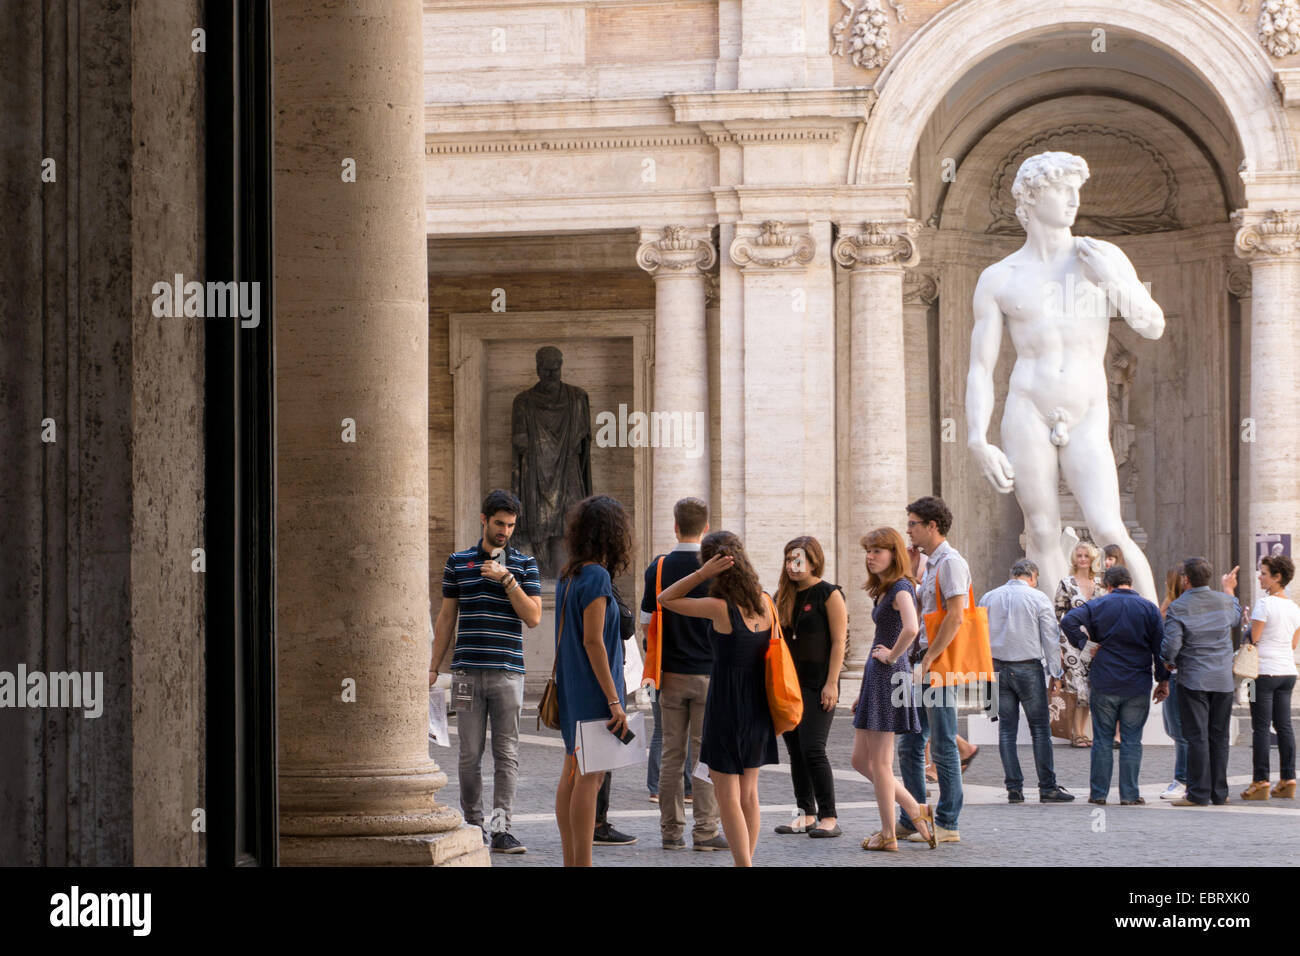 Italy: A replica of David at the Capitoline Museums, Rome. Photo from 6. September 2014. Stock Photo